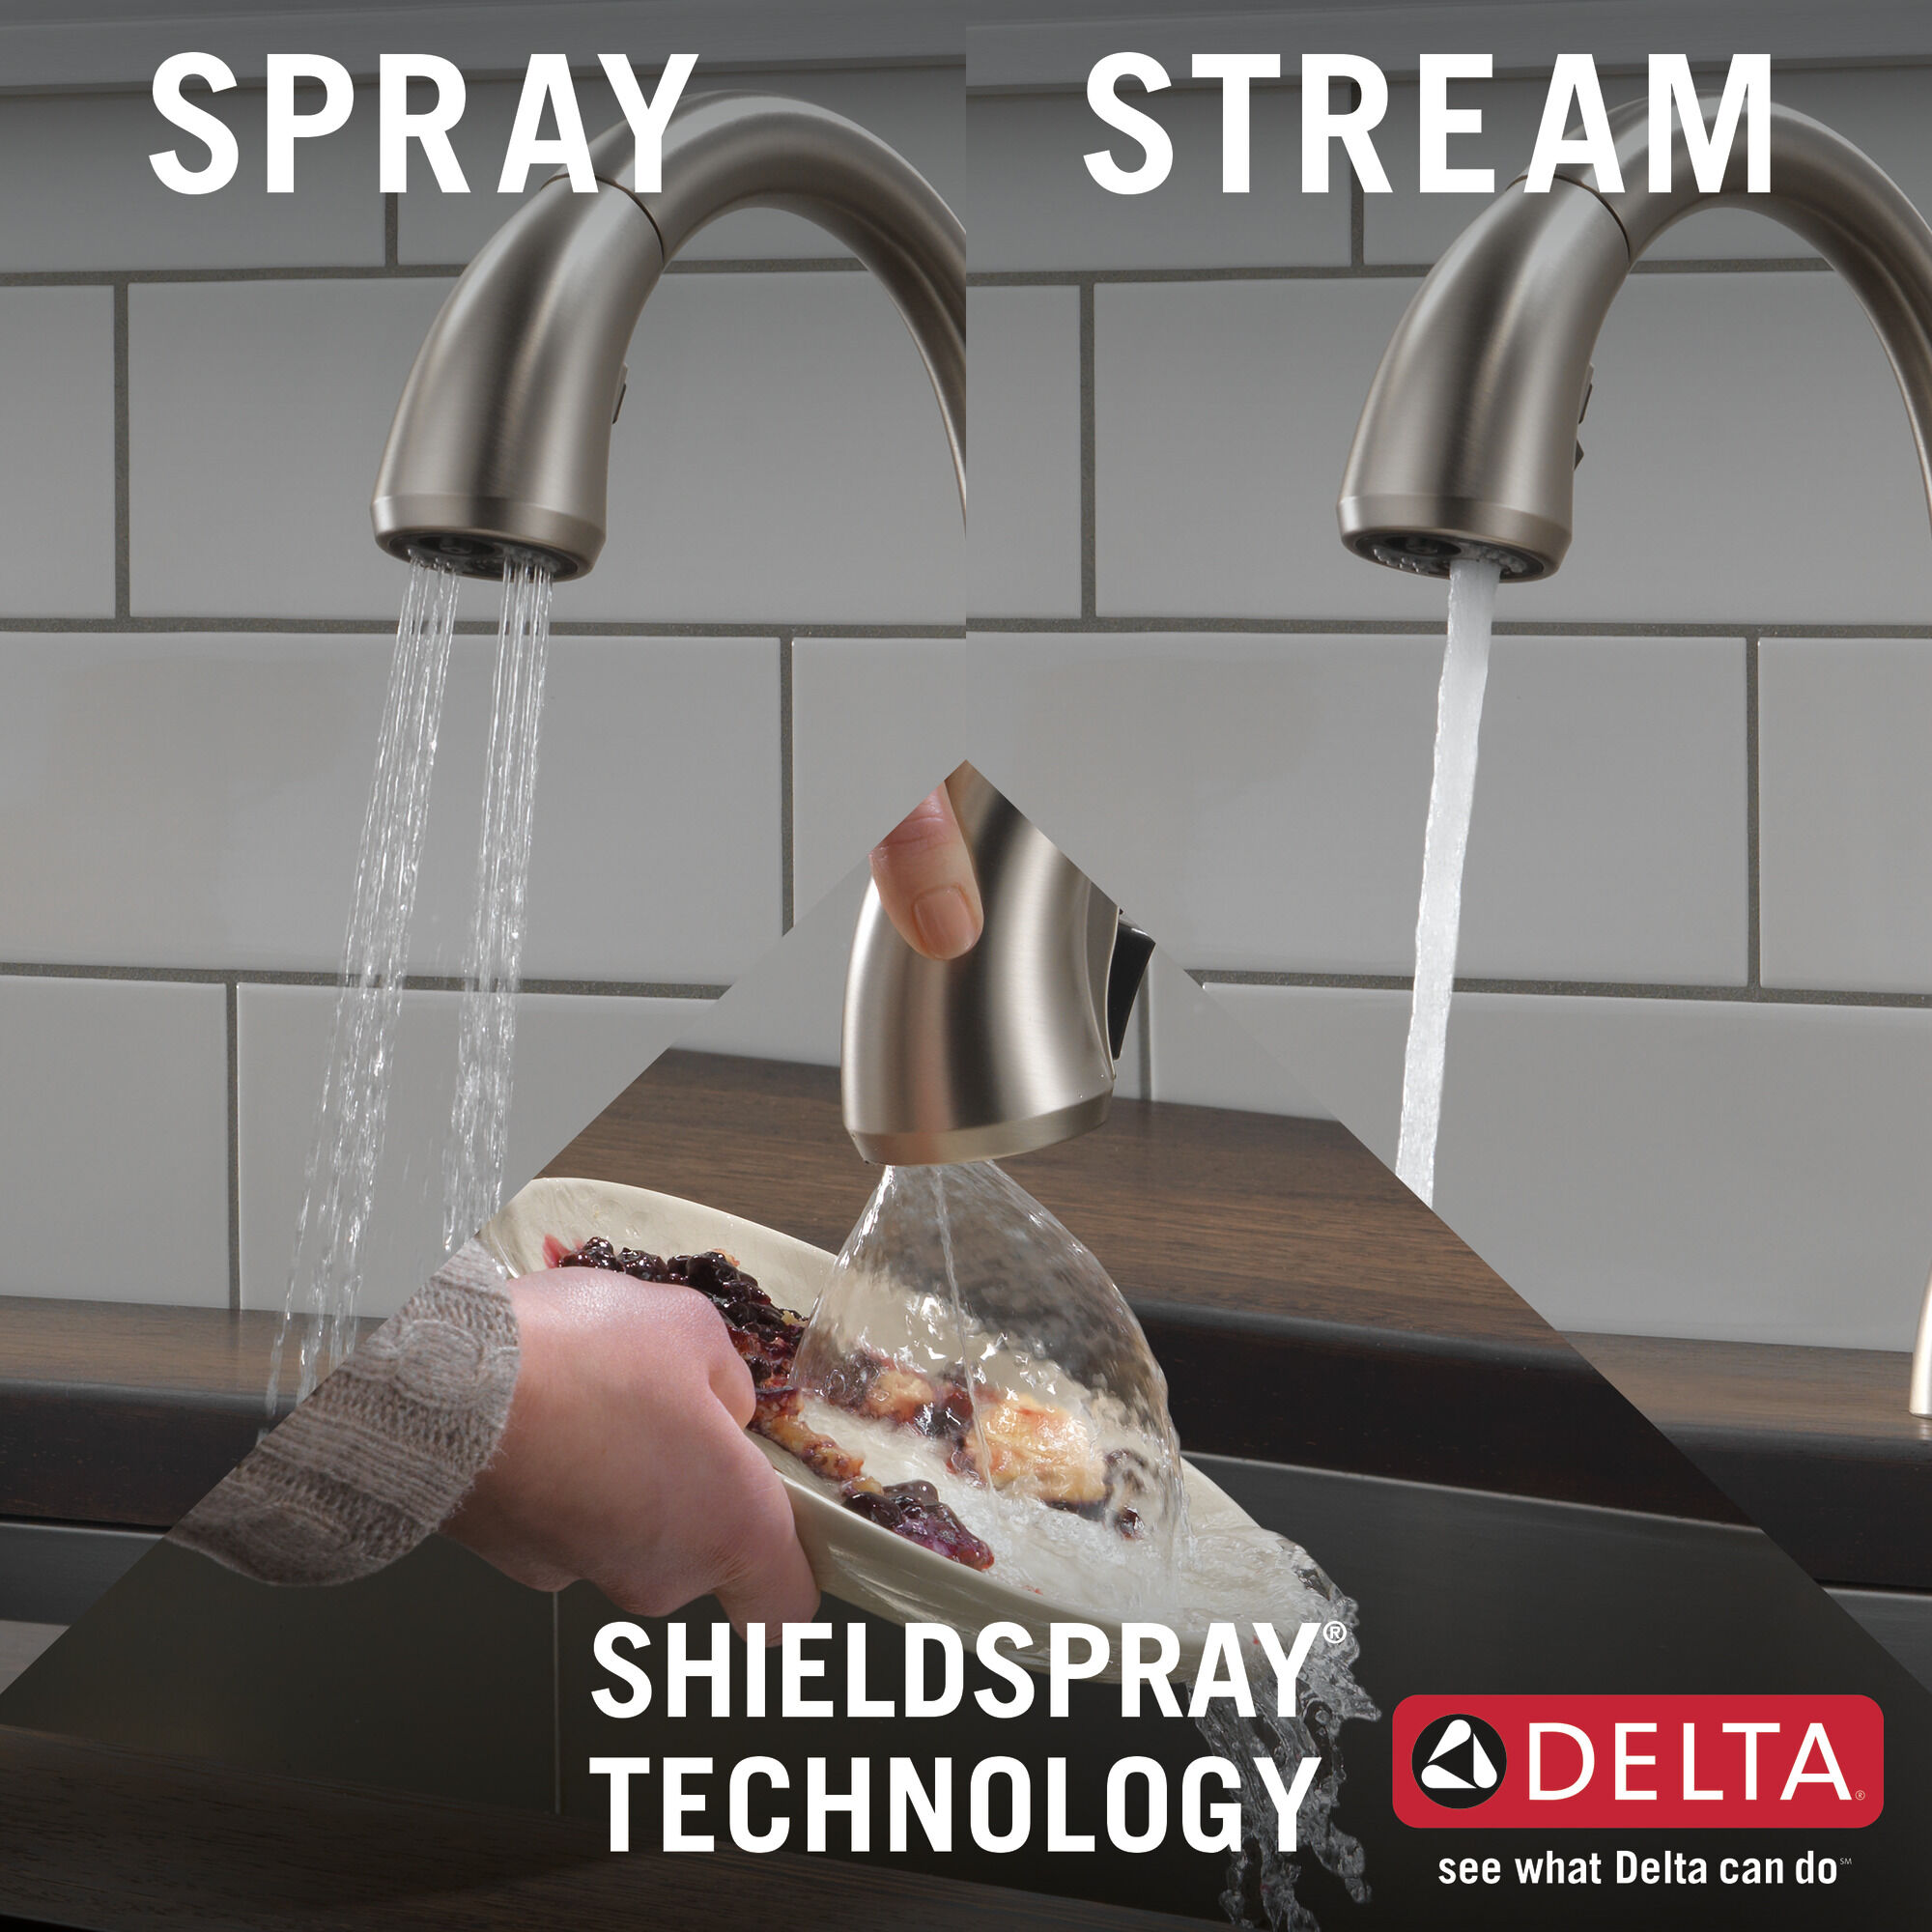 single handle pull out kitchen faucet with soap dispenser and shieldspray technology